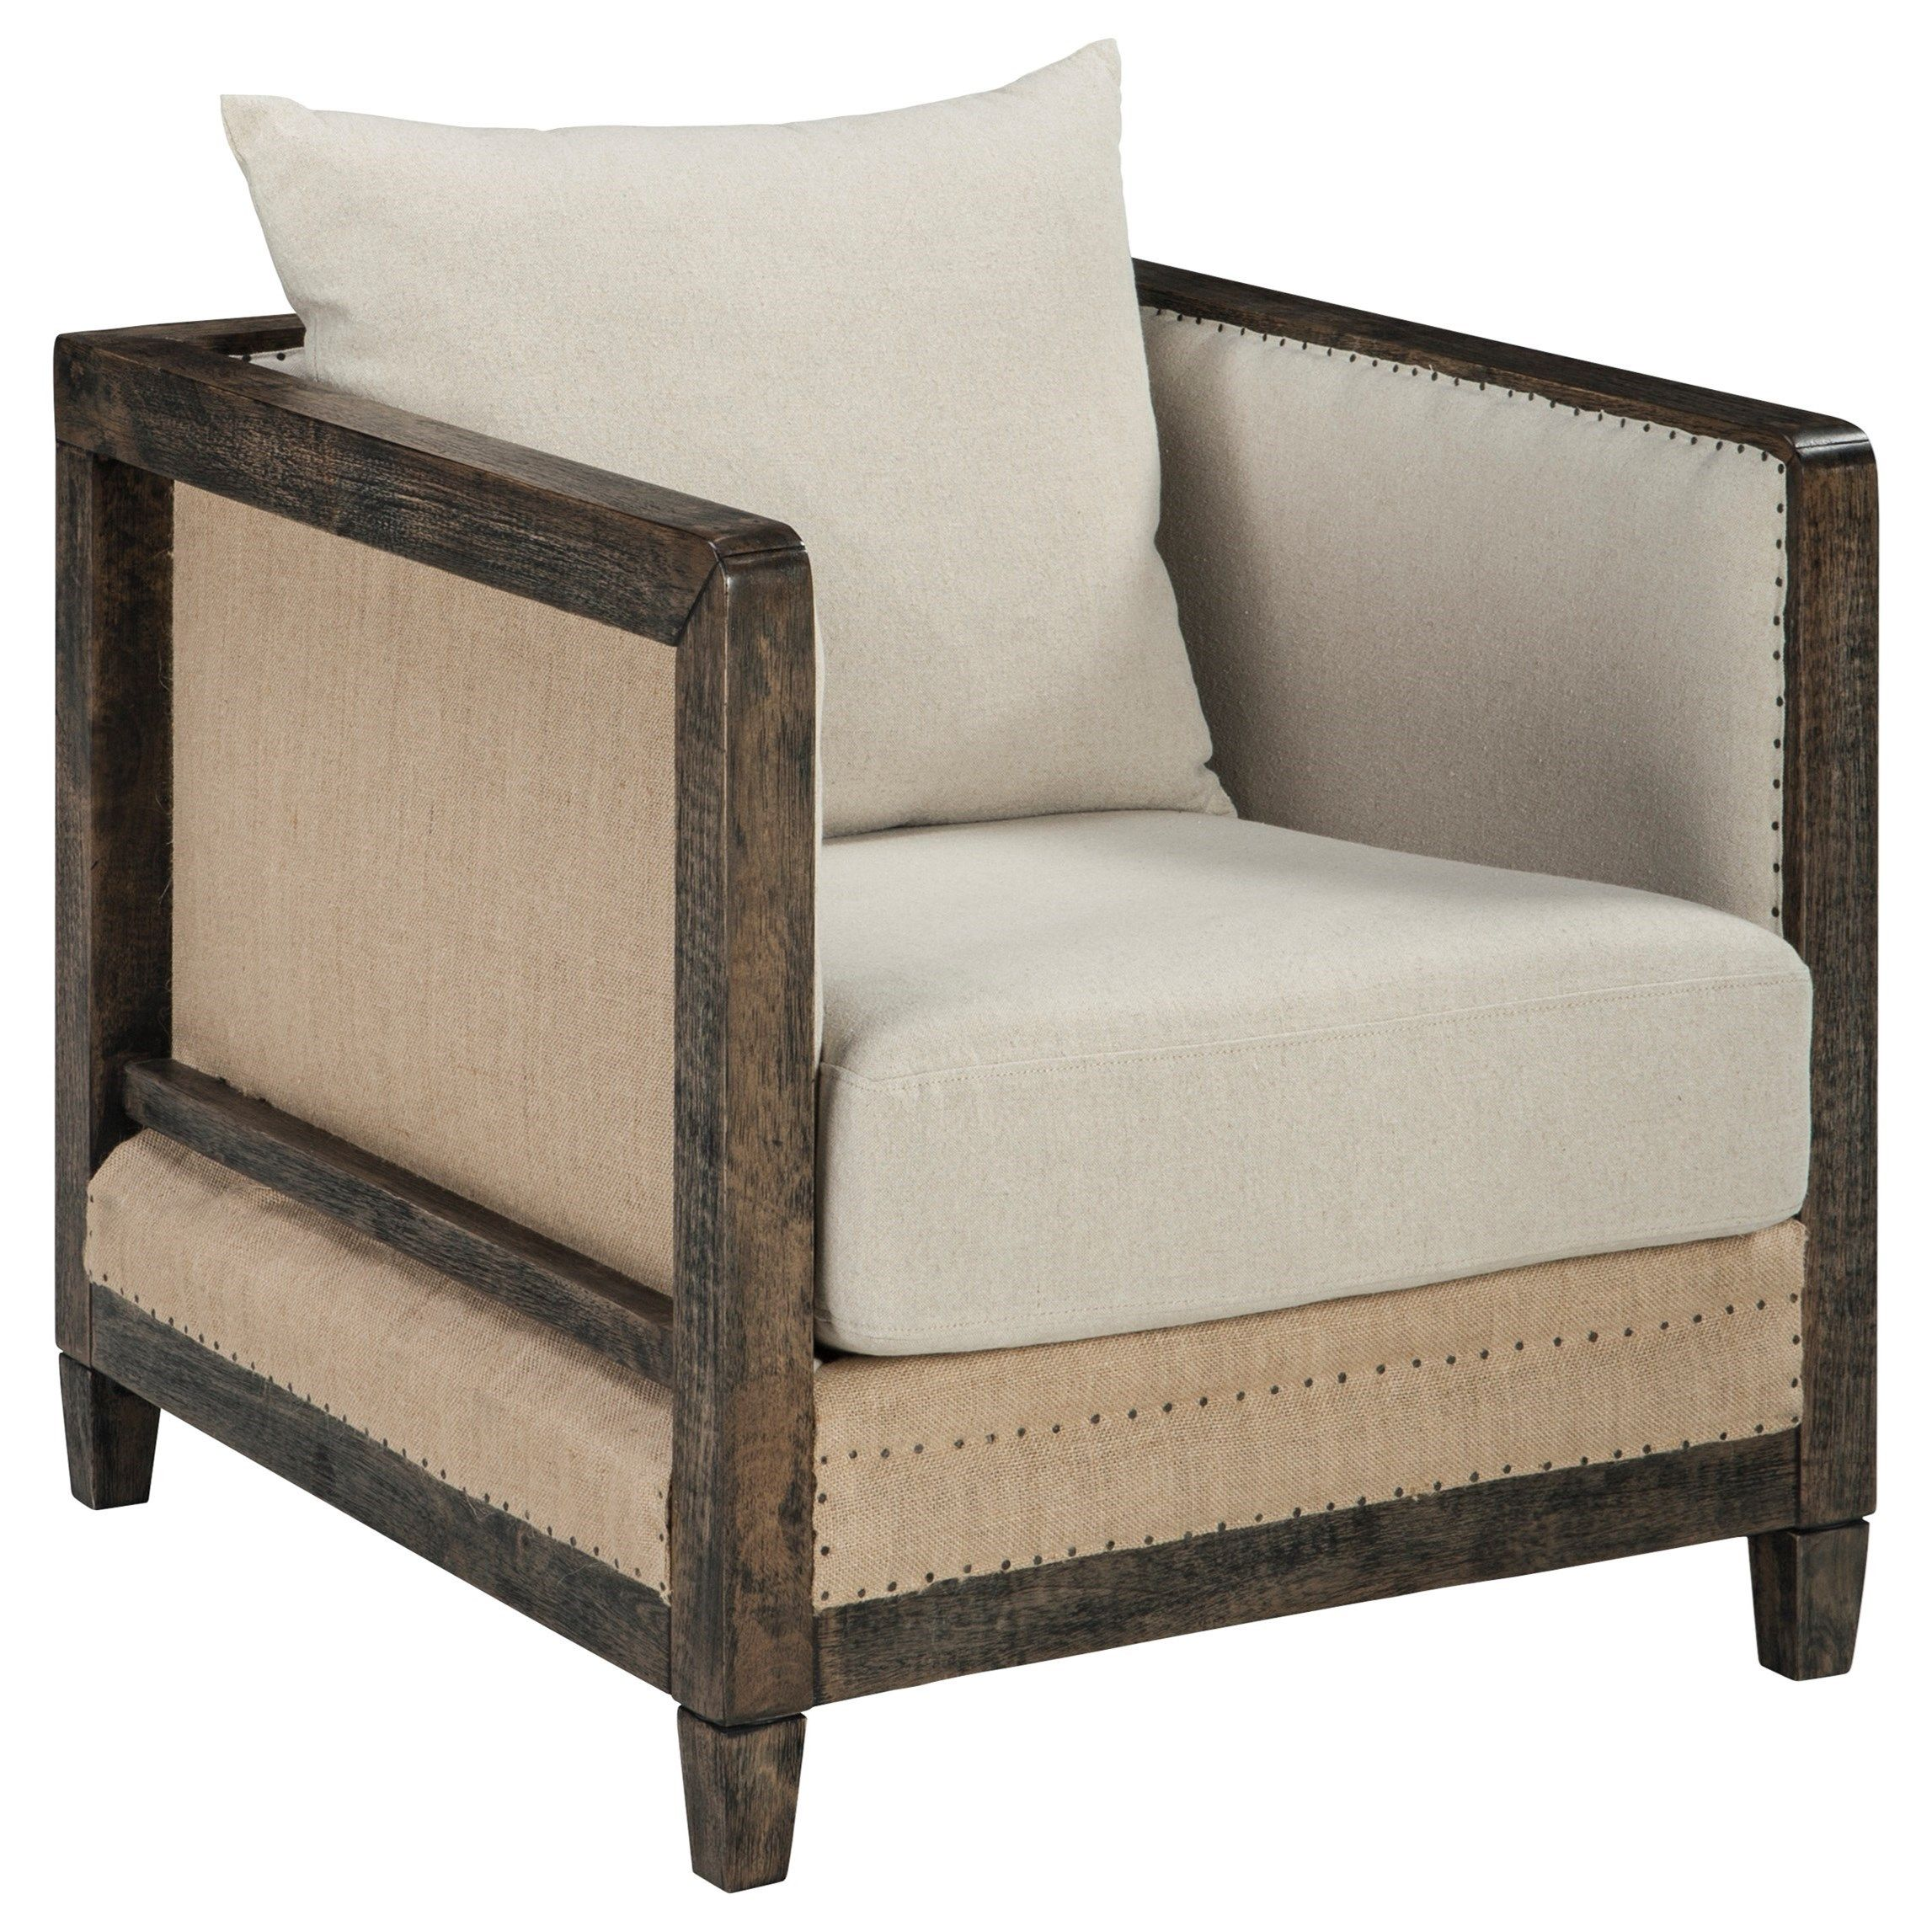 Copeland Deconstructed Style Linen Fabric Accent Chair With Wood